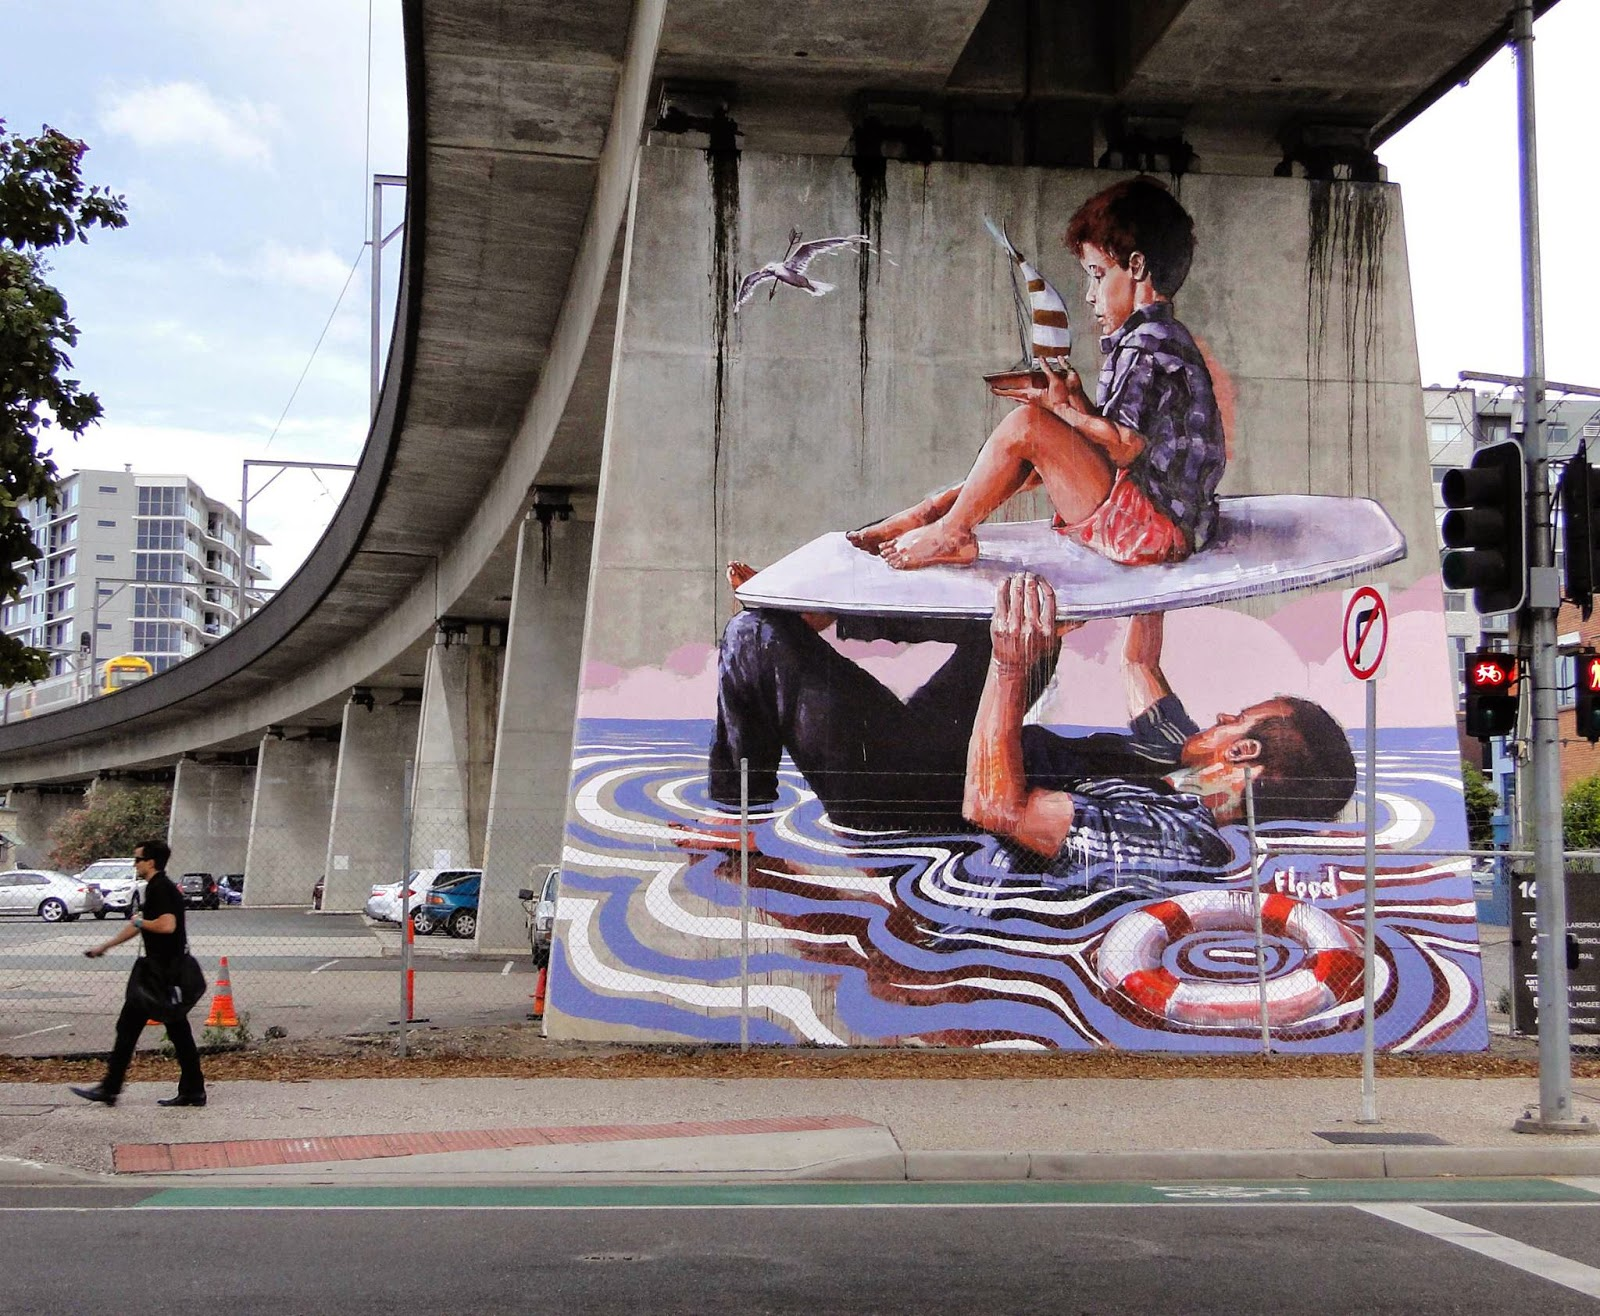 Before his arrival in Las Vegas for Life Is Beautiful, Fintan Magee spent a few days in Brisbane, Australia where he was invited by the Pillars Project.